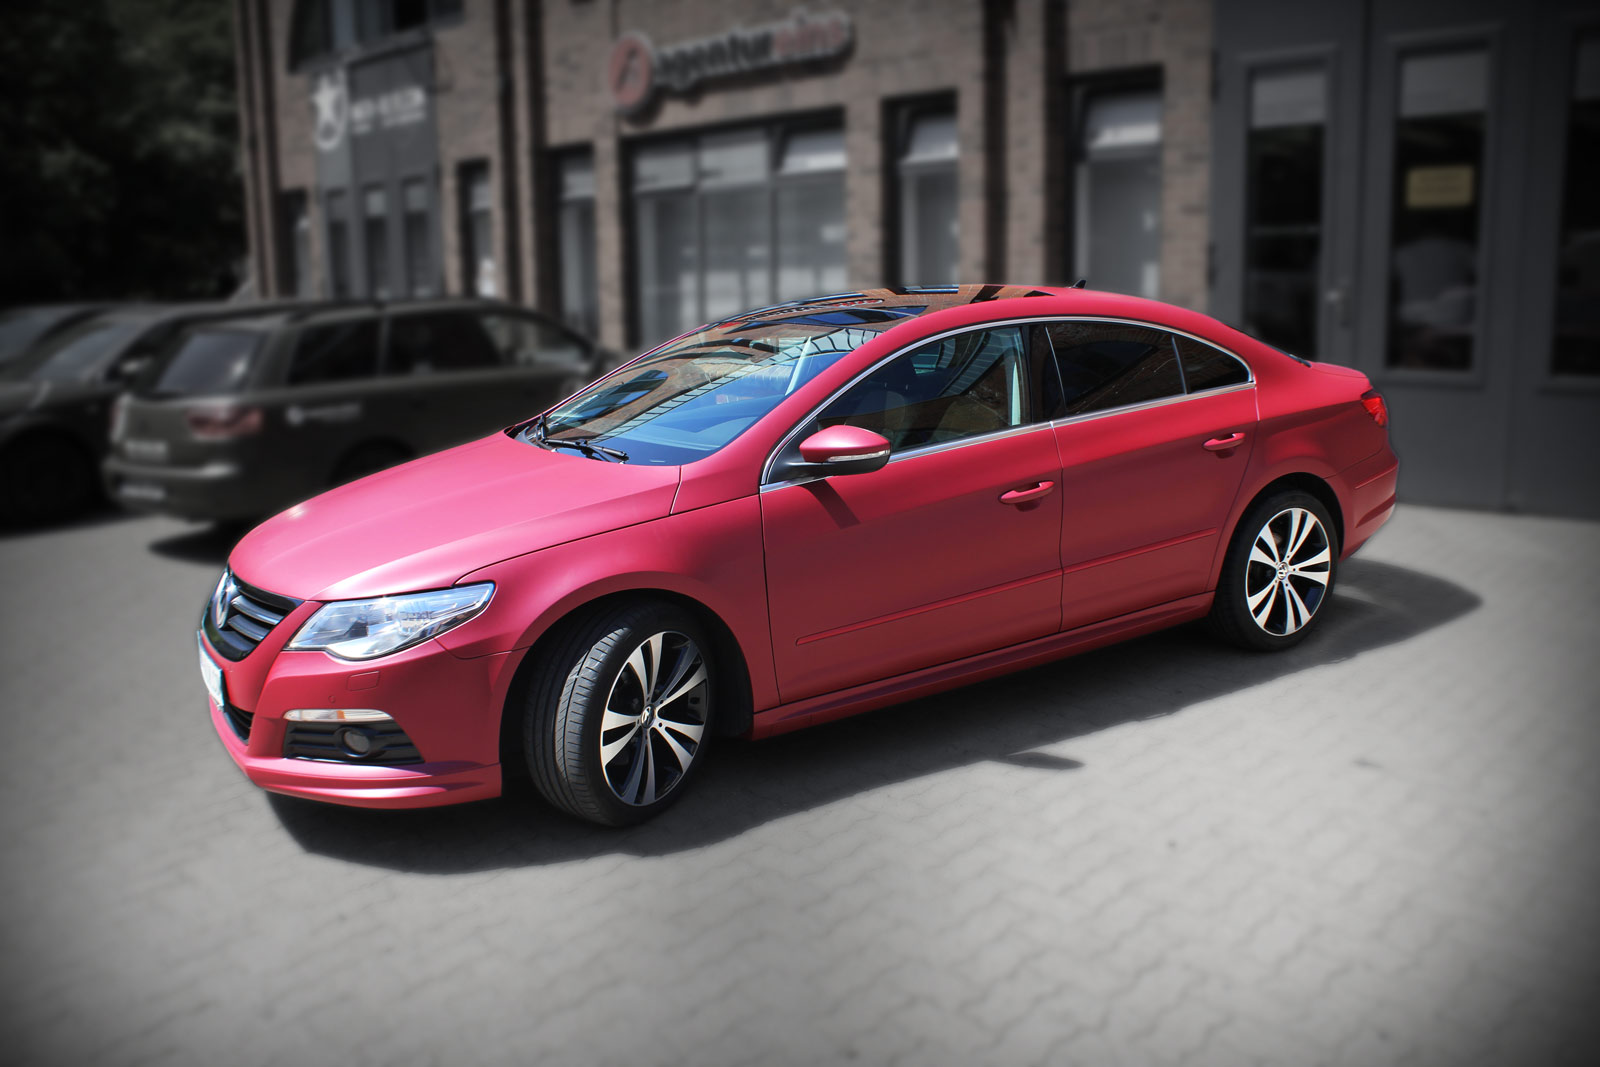 VW Passat CC Folierung in cherry red metallic matt.